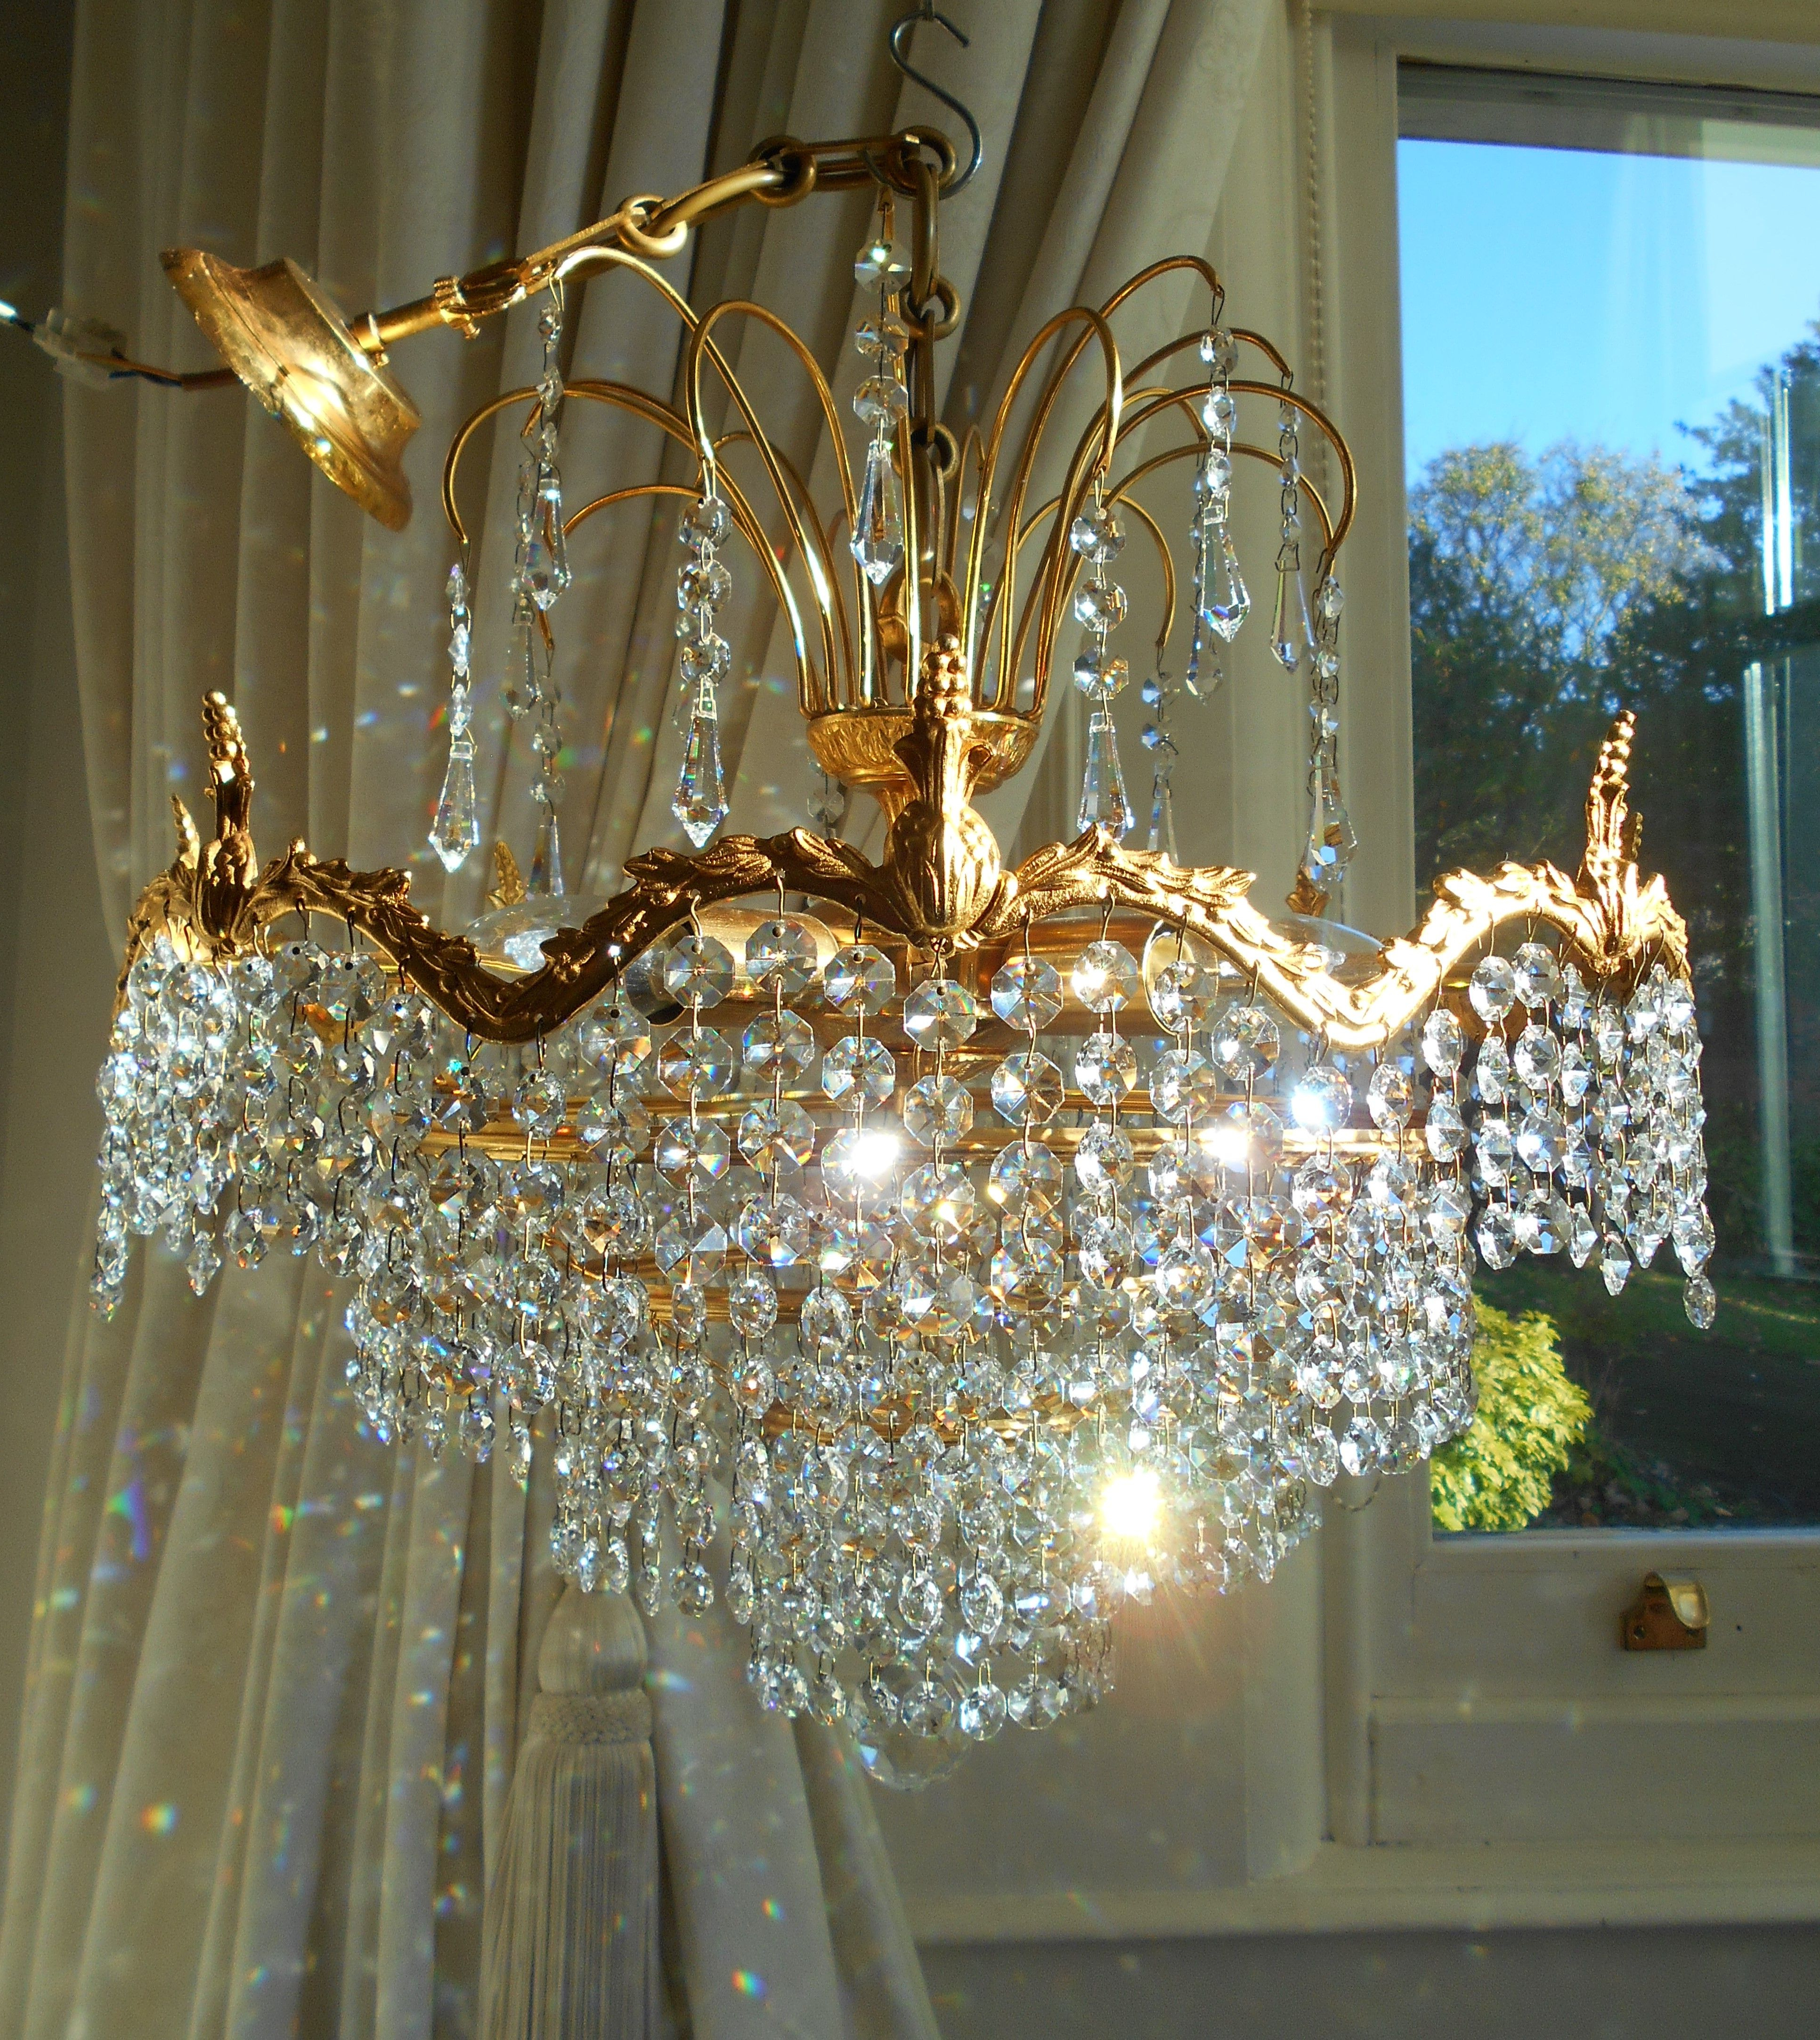 Blanchette 5 Light Candle Style Chandeliers In Most Recent Vintage 5 Tier Lead Cystal Waterfall Chandelier (View 4 of 20)